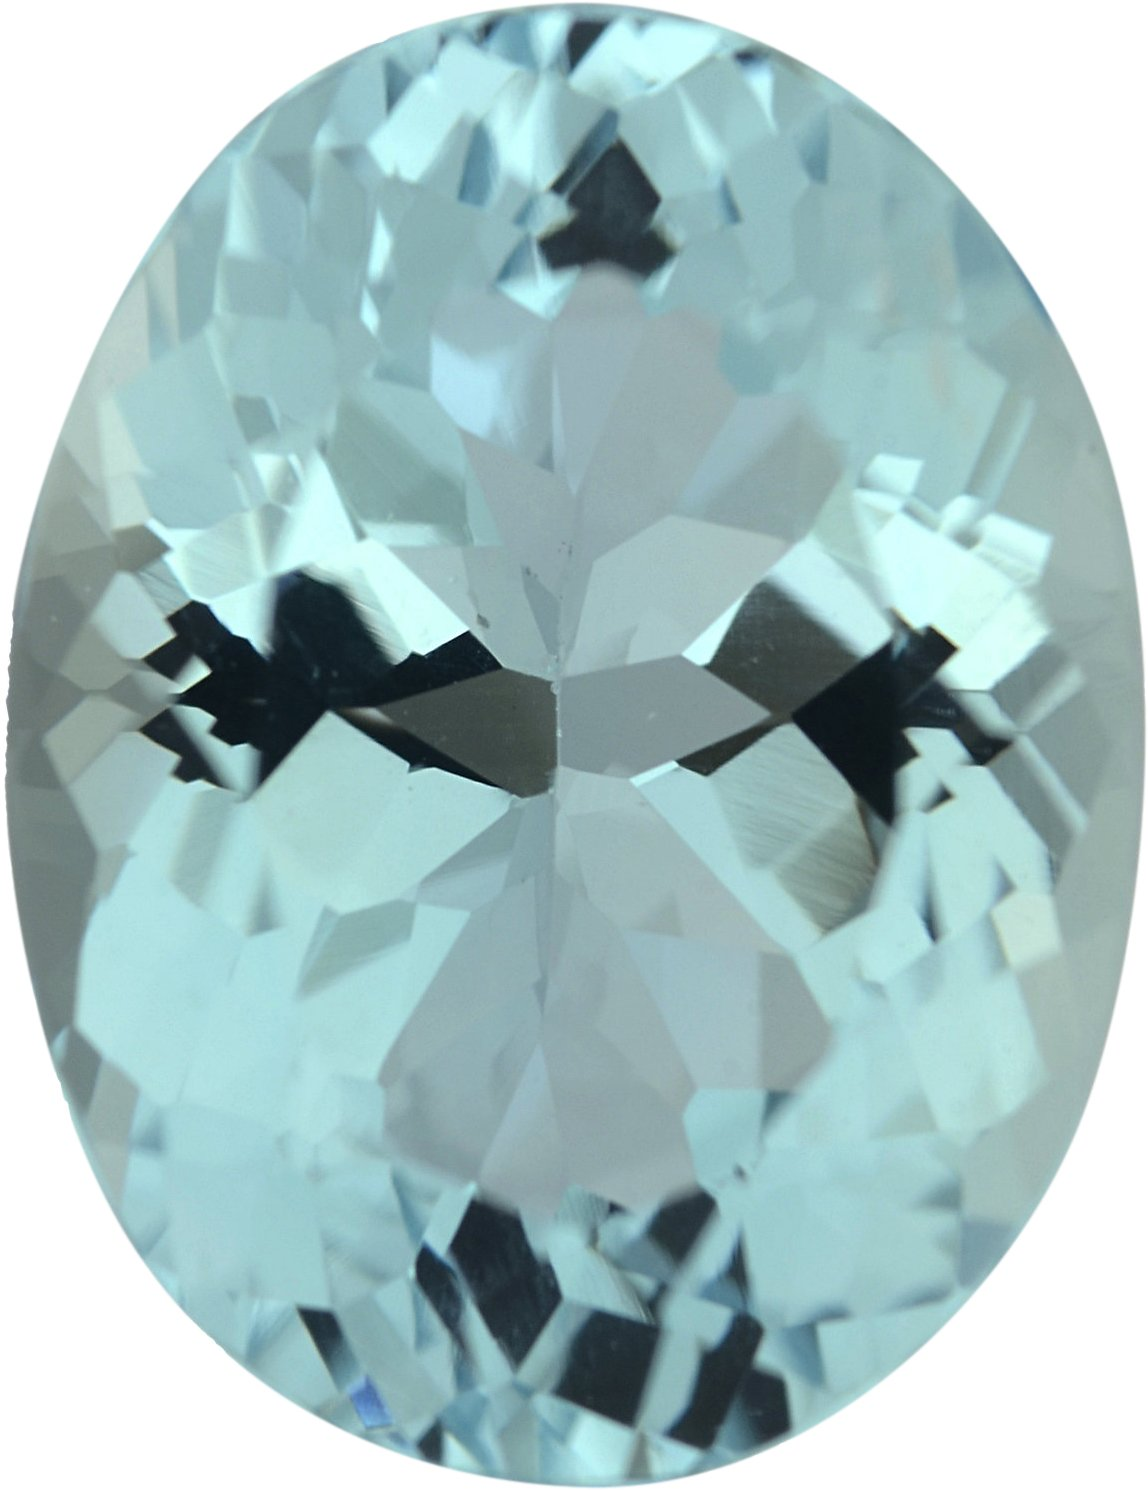 Super Nice Oval Cut Loose Aquamarine Gem, Greenish Blue, 11.43 x 8.76 mm, 3.39 carats